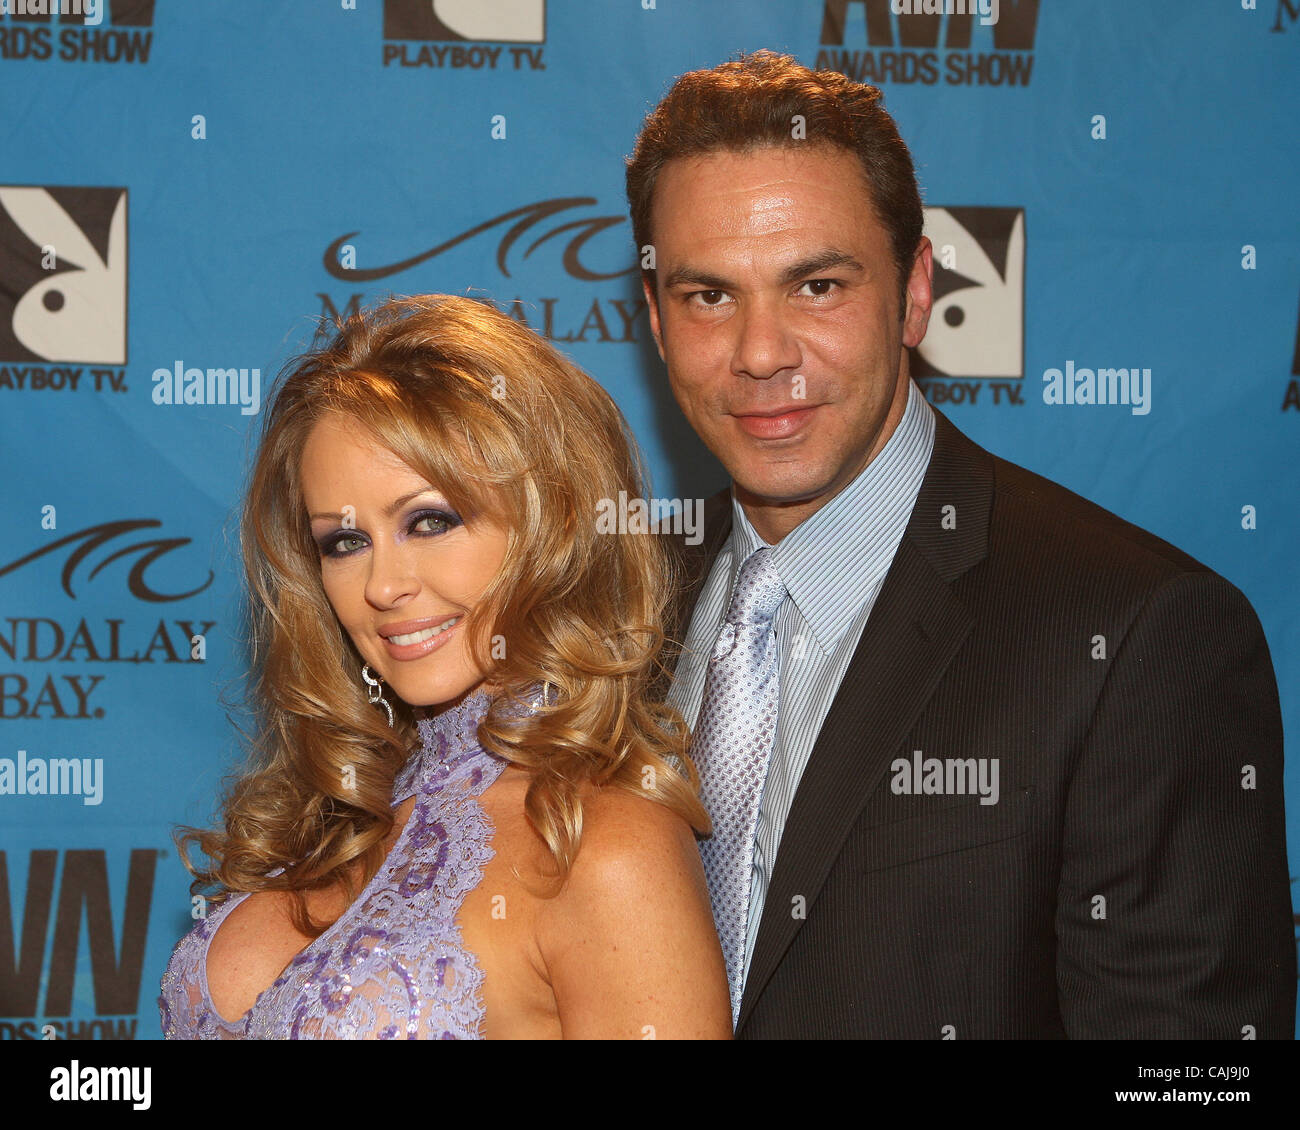 Dyanna Lauren And Steven St Croixon The Red Carpet Of The 25th Annual Avn Adult Movie Awards Held In Las Vegas Nevada At The Mandalay Bay Events Center